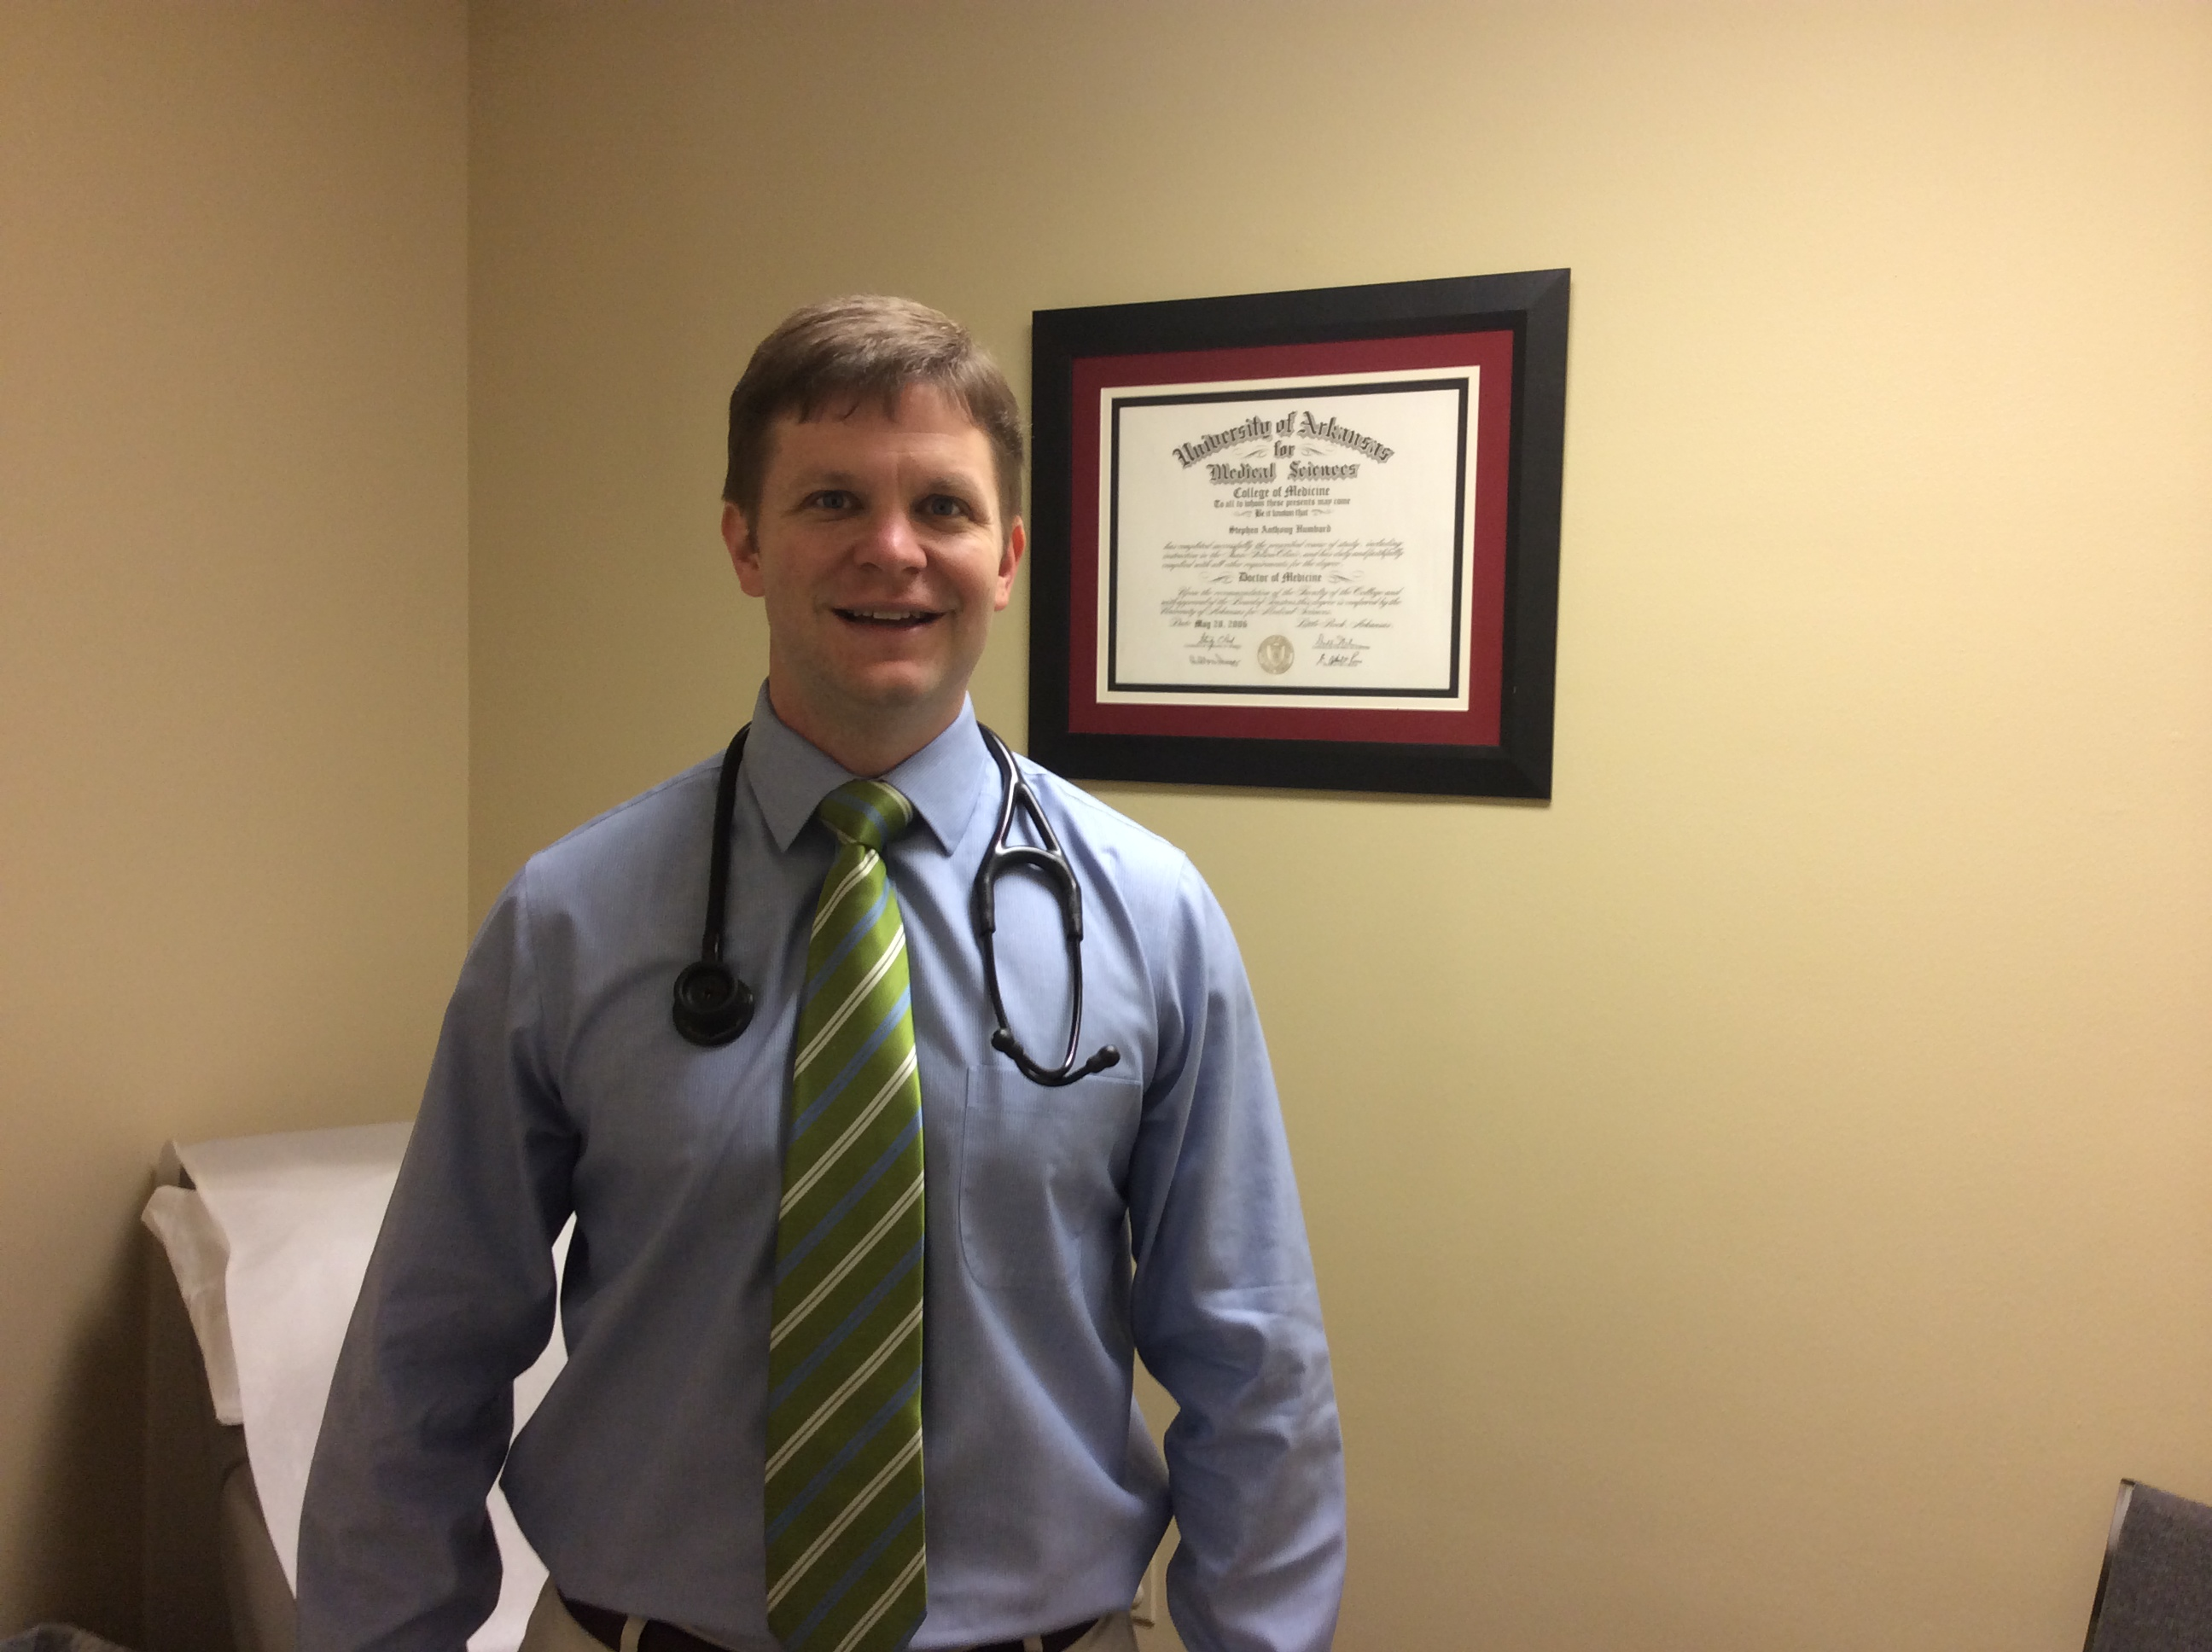 Dr. Stephen Humbard, MD